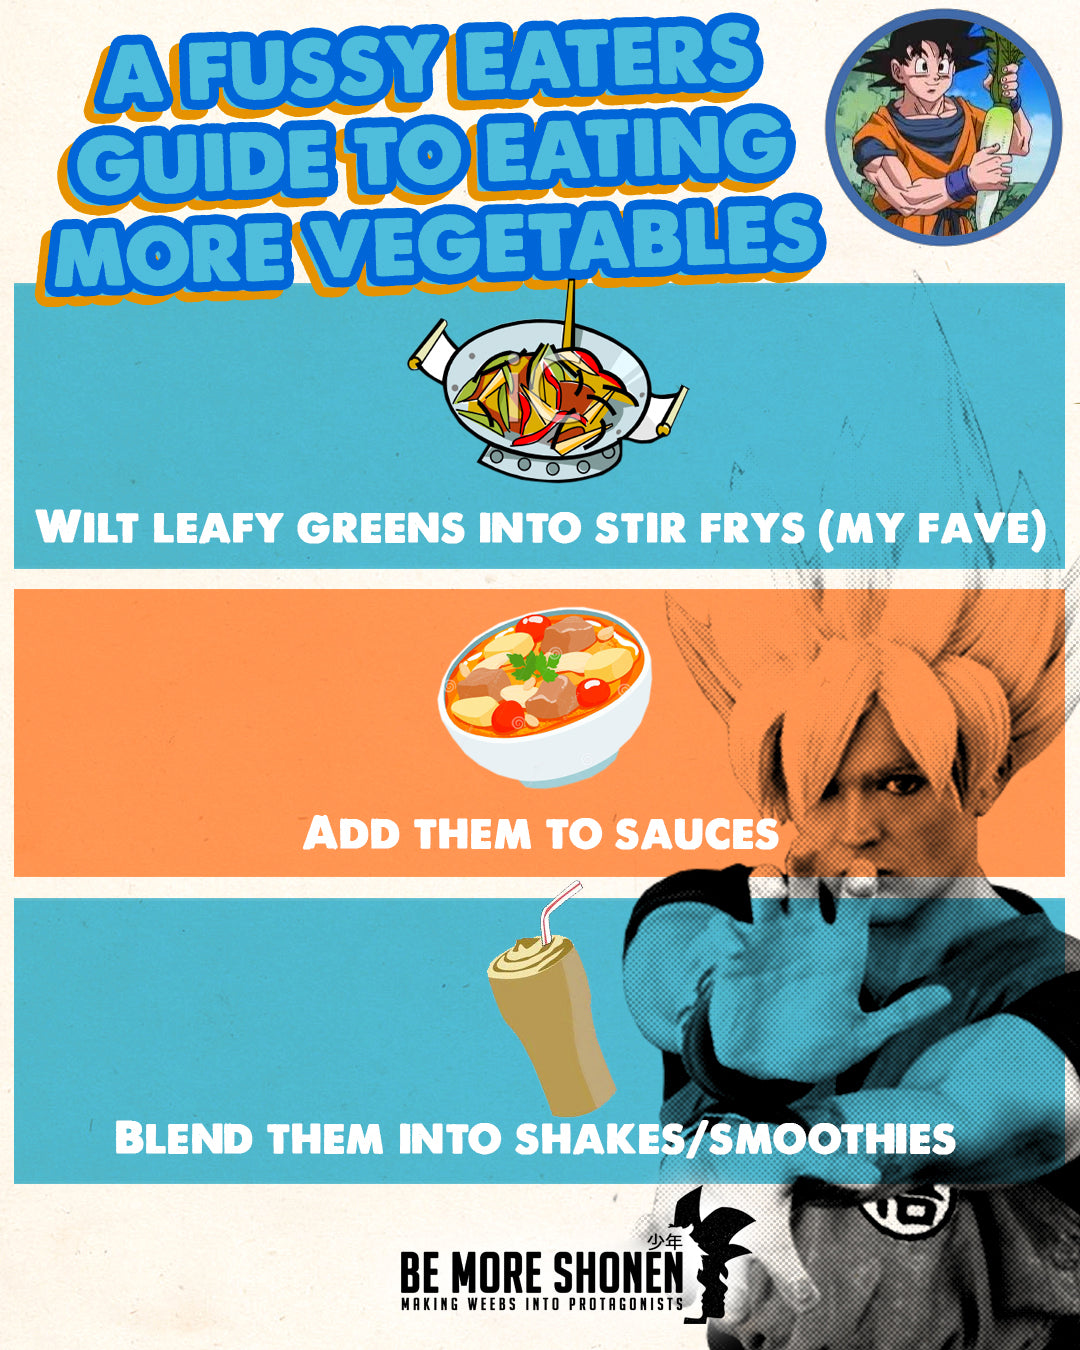 How to eat vegetables if you're a fussy eater. Anime inspired guide for weebs who want to get healthy